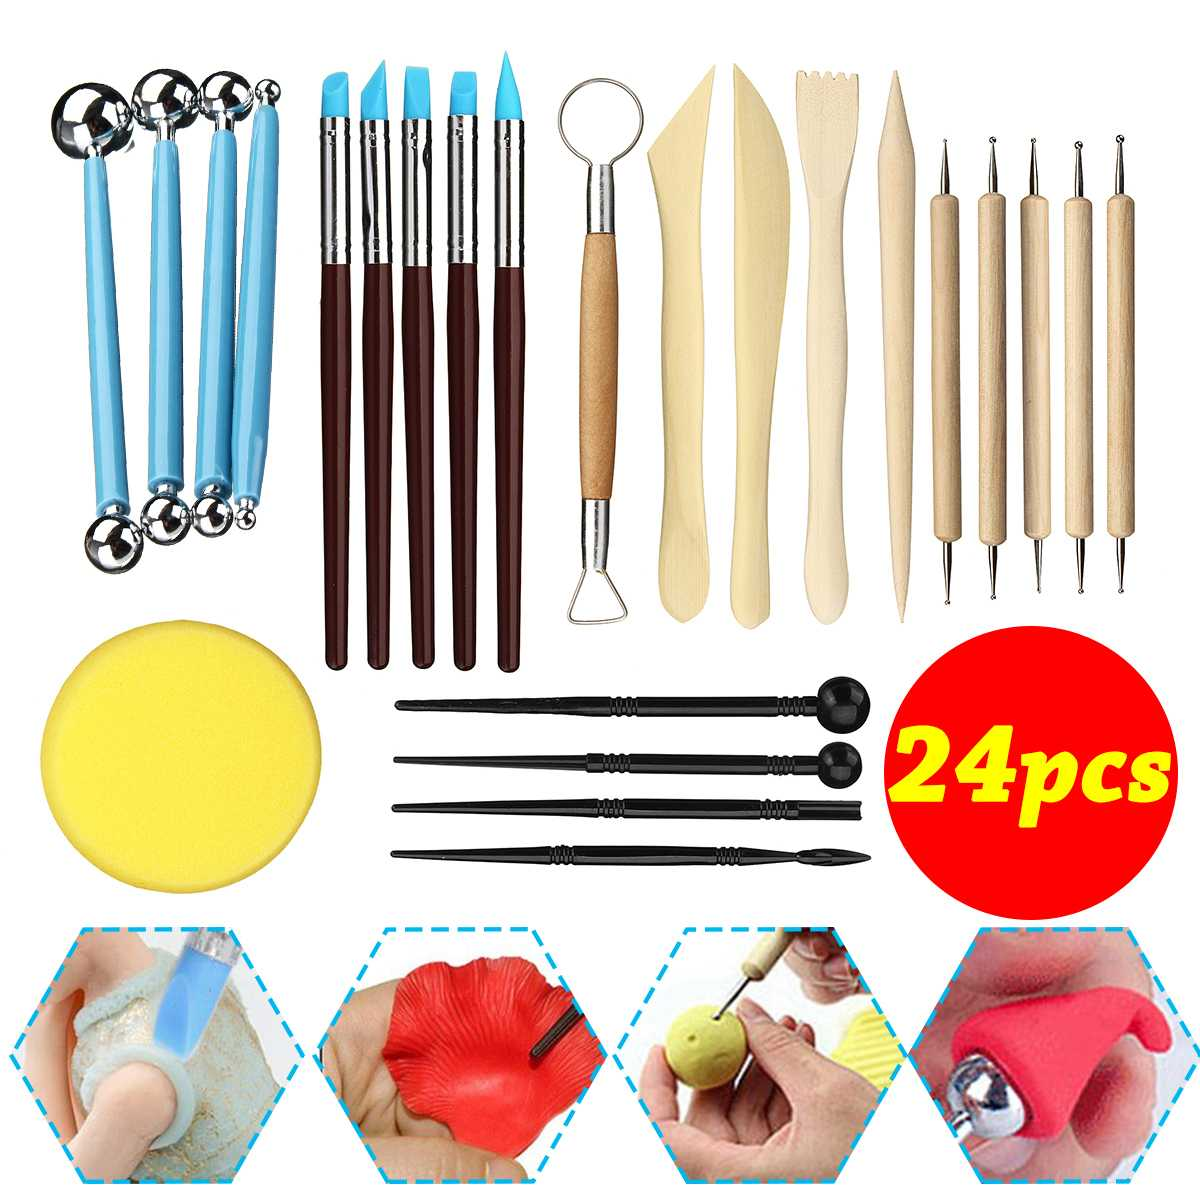 24 Pcs Clay Sculpting Tools Set Ball Stylus embossing Pottery & Ceramics Tools DIY Arts Crafts lines Carving Modeling Tool gift